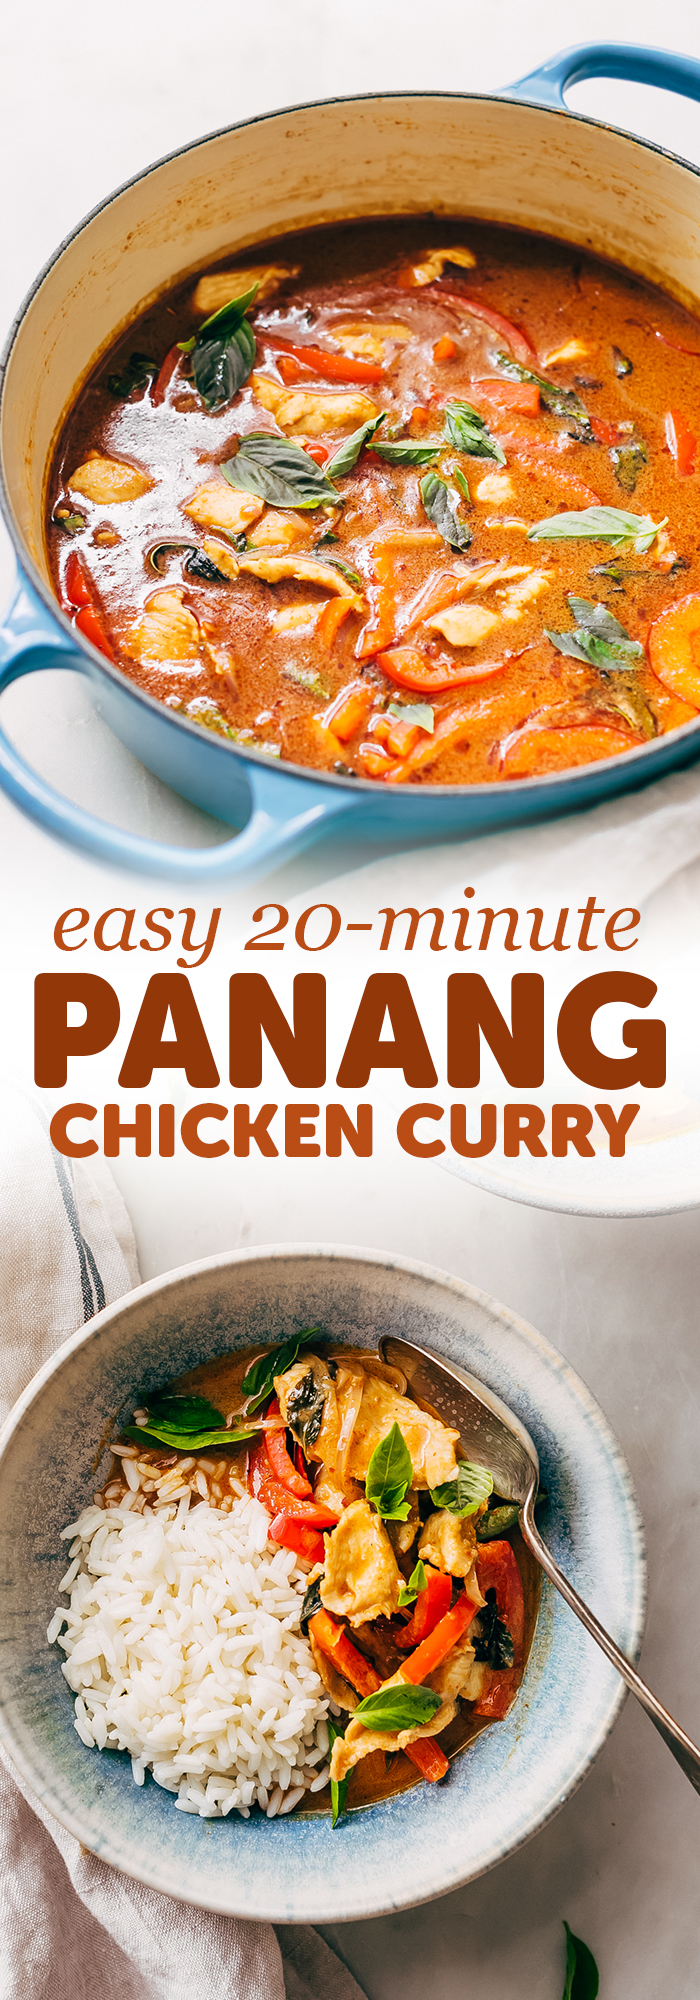 20 Minute Panang Chicken Curry - An easy recipe that you can throw together in 20 minutes and tastes better than takeout! #panangcurry #chickencurry #curry #dinnerrecipes   Littlespicejar.com